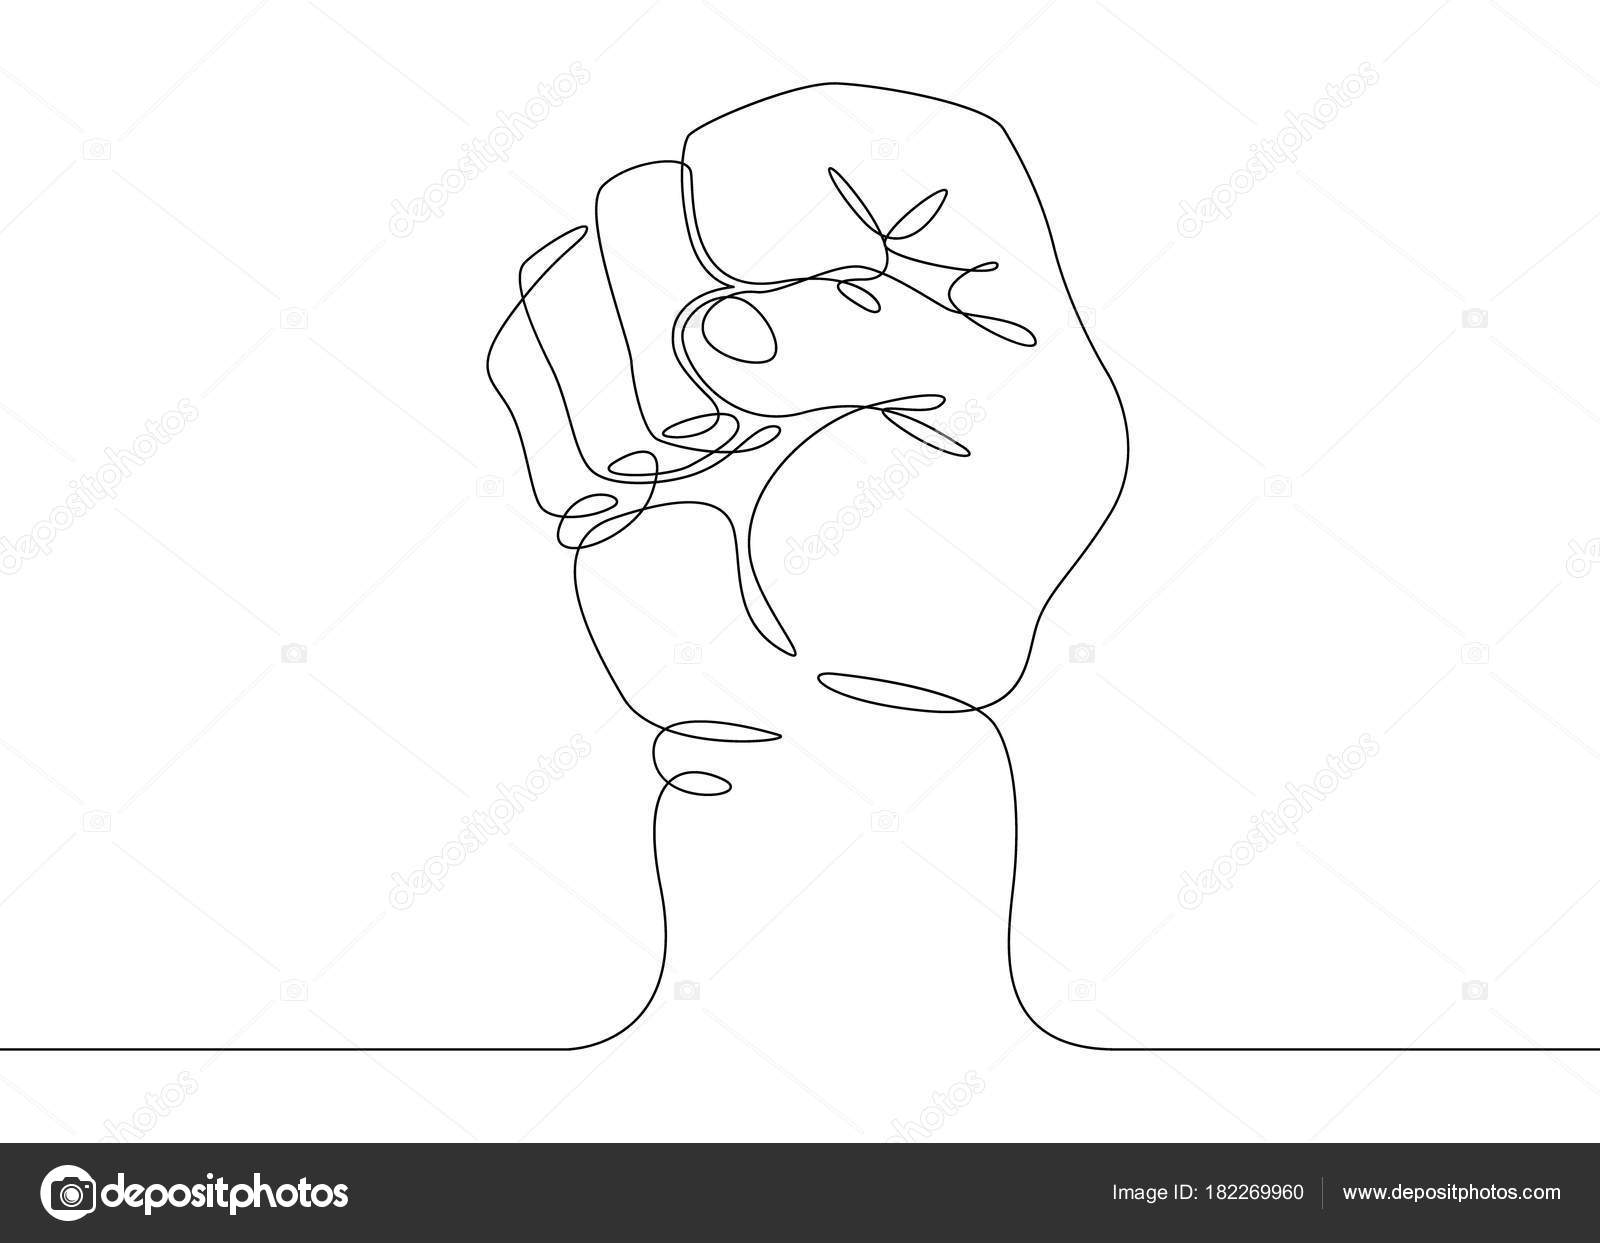 Line Drawing Face : Continuous line drawing fist gesture u stock vector derplan